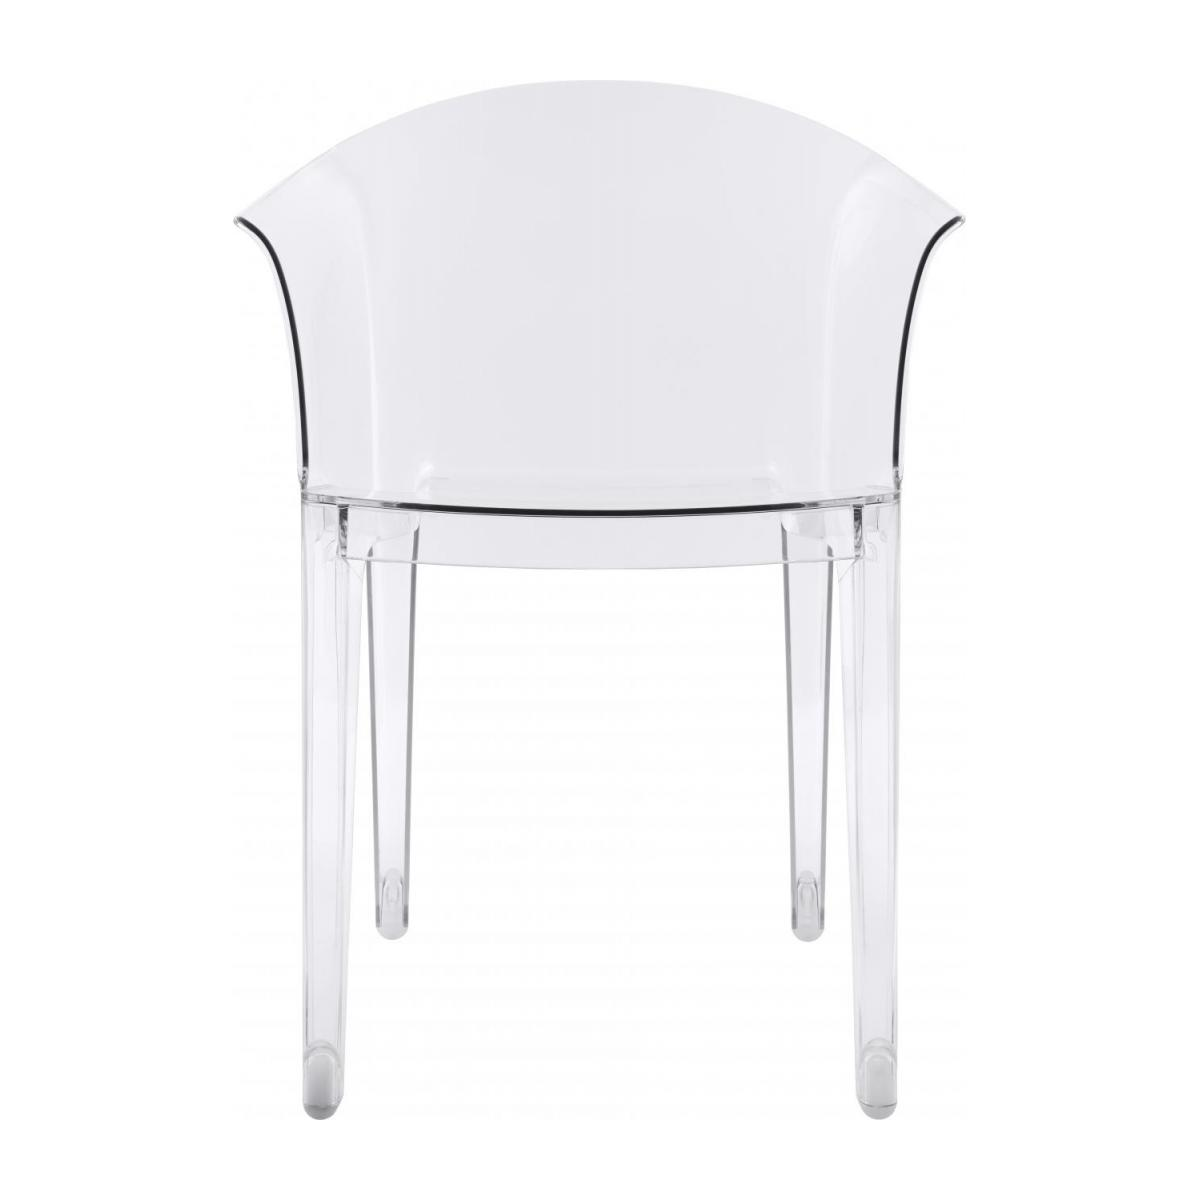 Transparent armchair in polycarbonate n°2